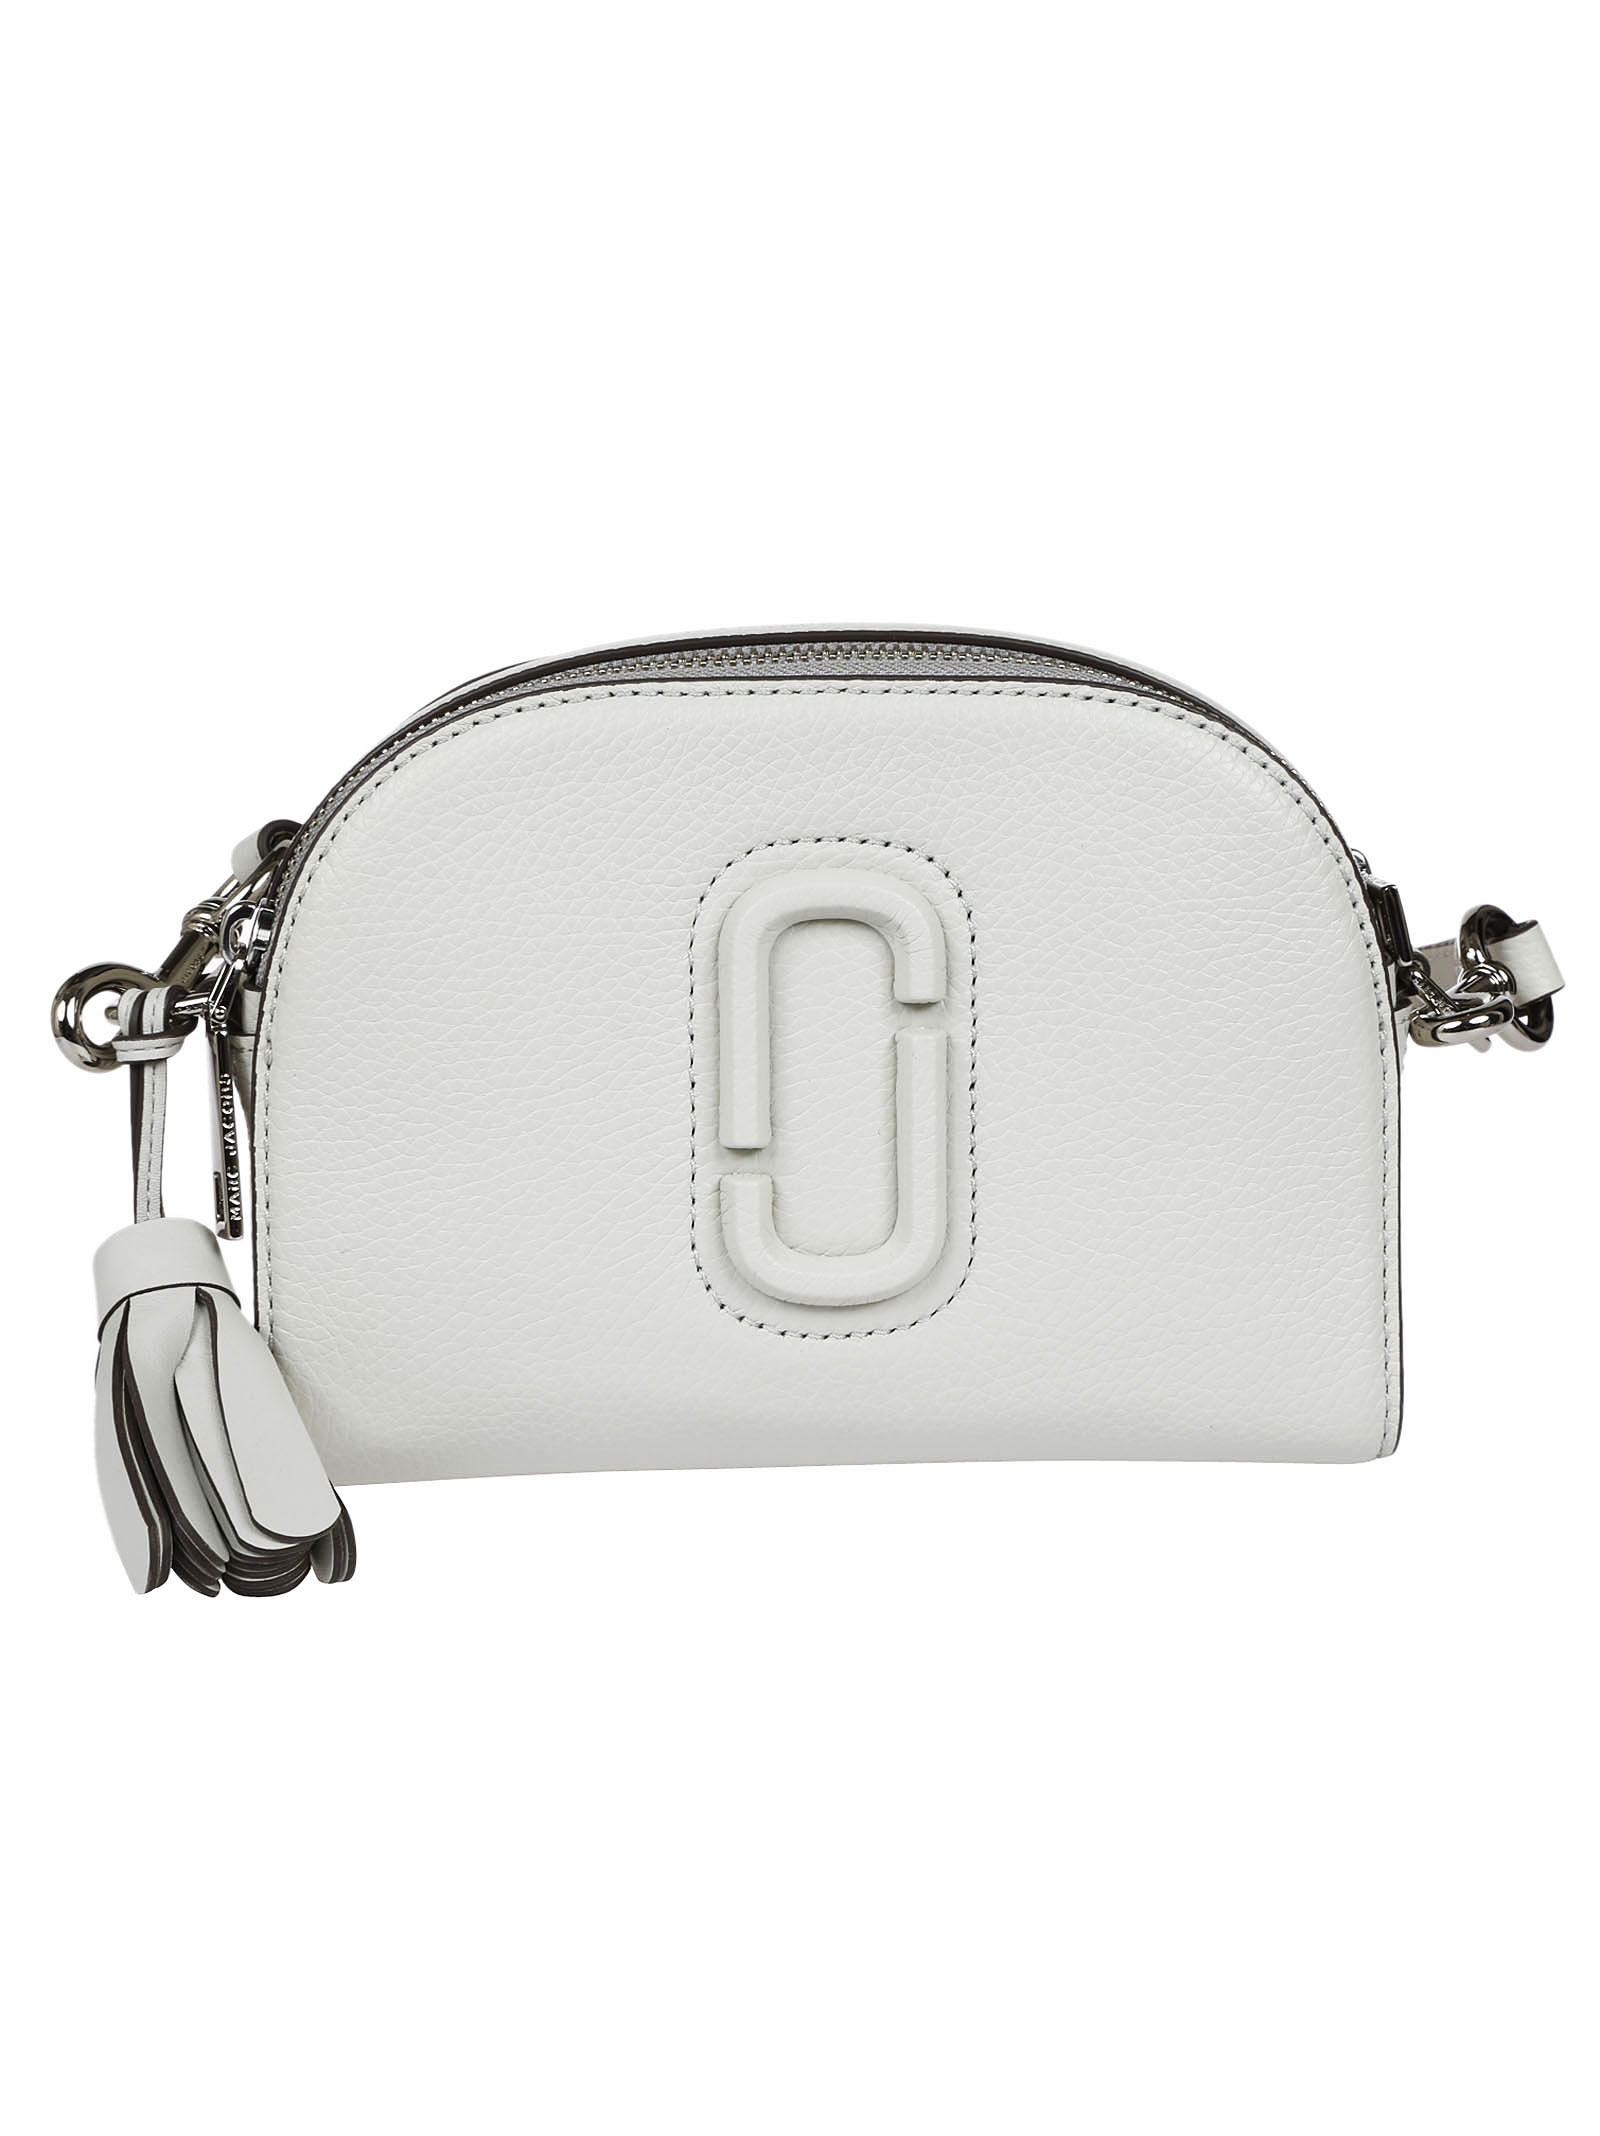 marc jacobs female marc jacobs shutter camera bag